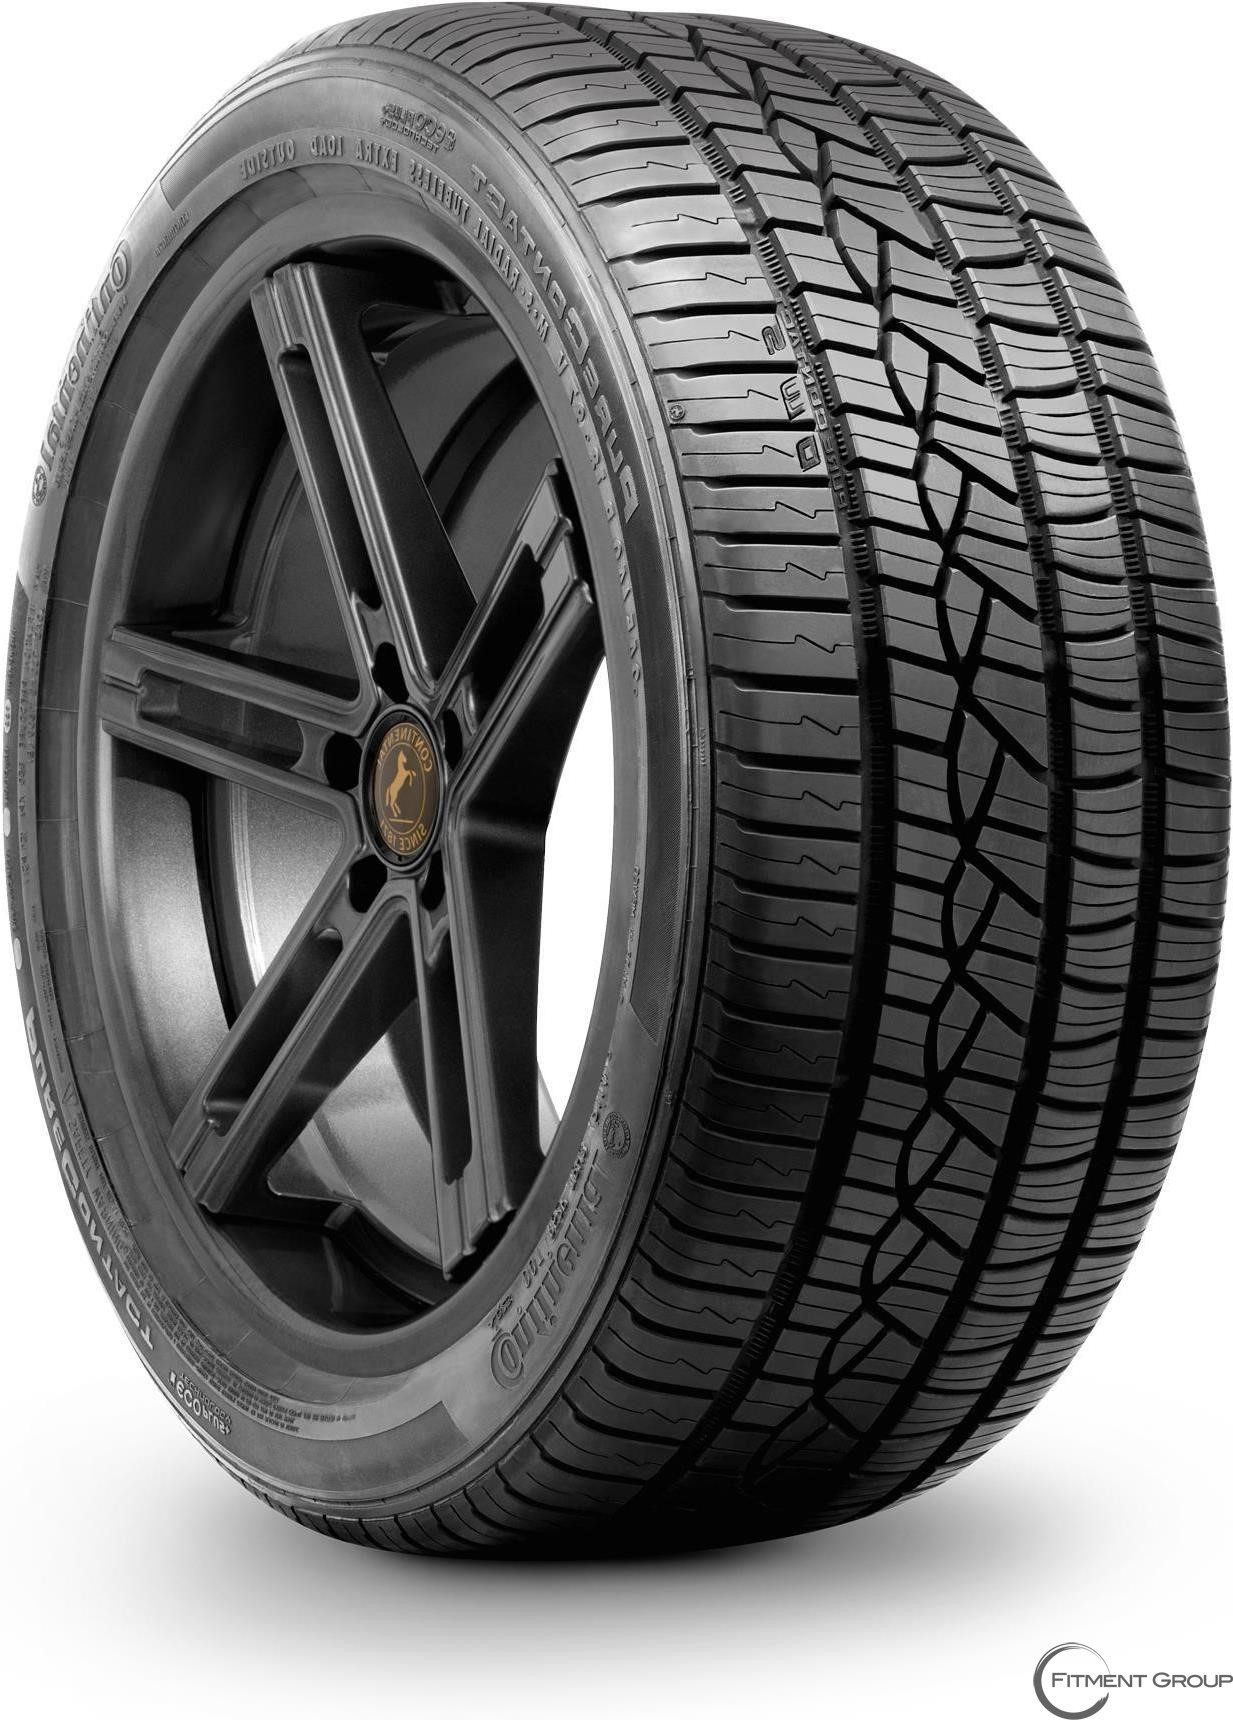 195/65R15 PURECONTACT  91H BSW CNT